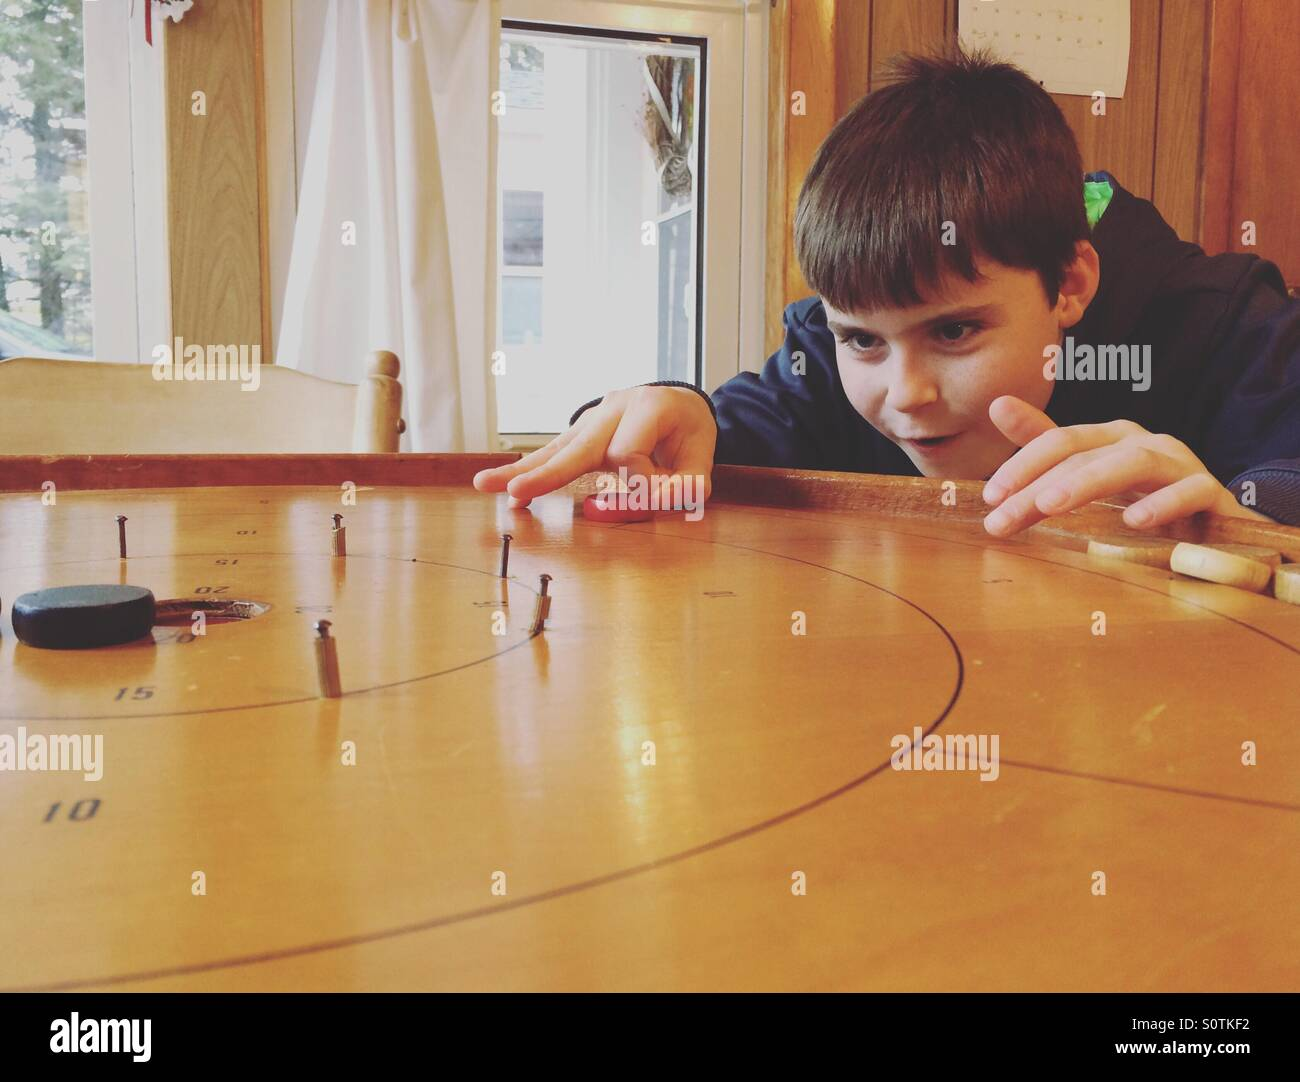 A ten year old boy takes aim at an opponent's disc in a game of crokinole. - Stock Image